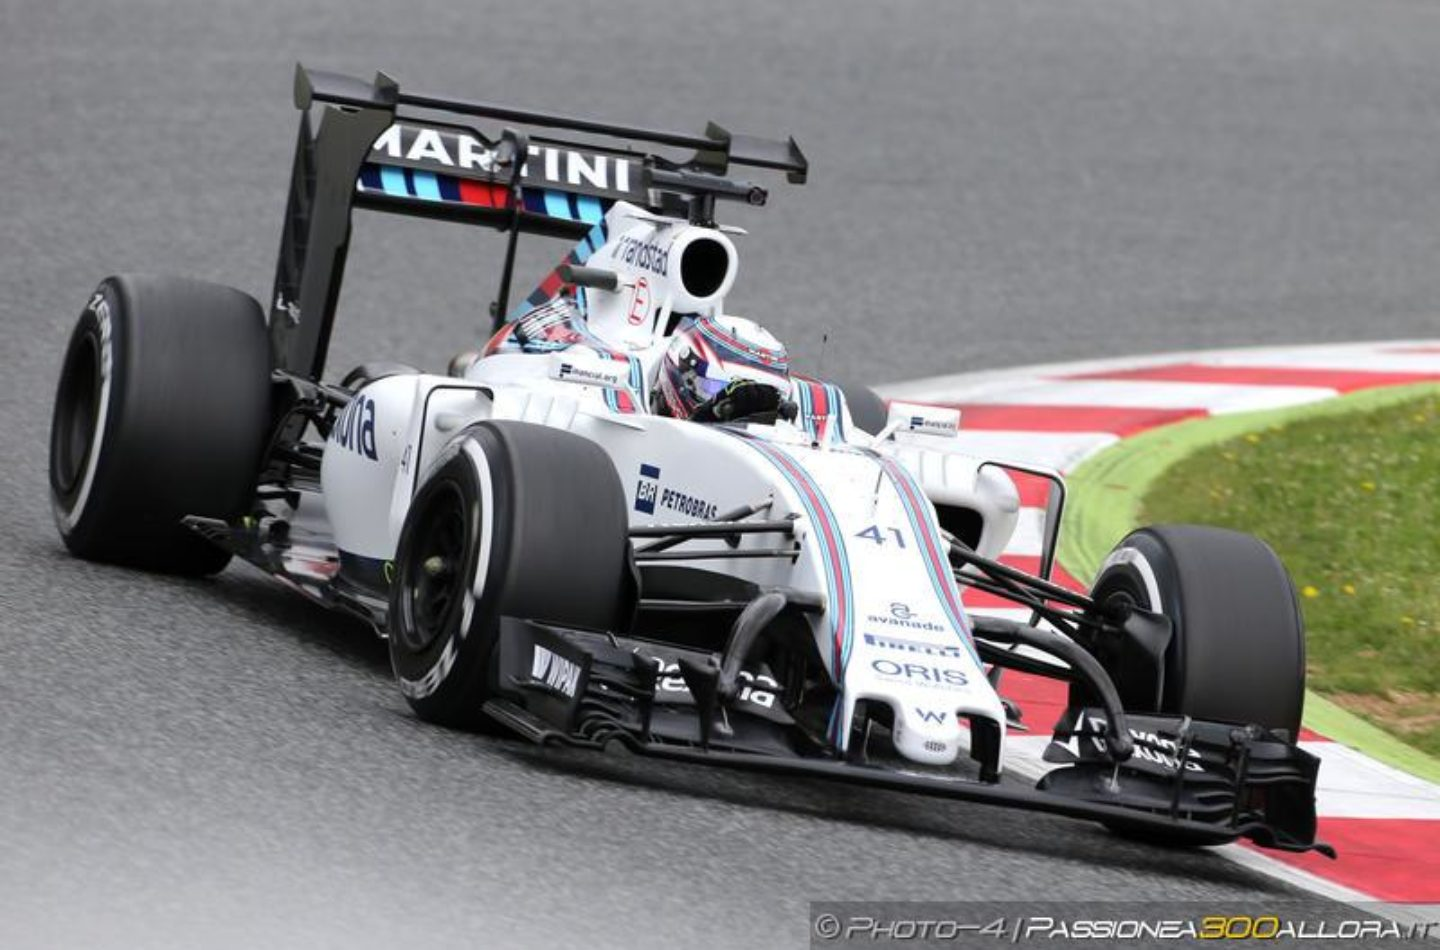 F1 | GP Malesia, qualifiche: la parola alla Williams e Red Bull